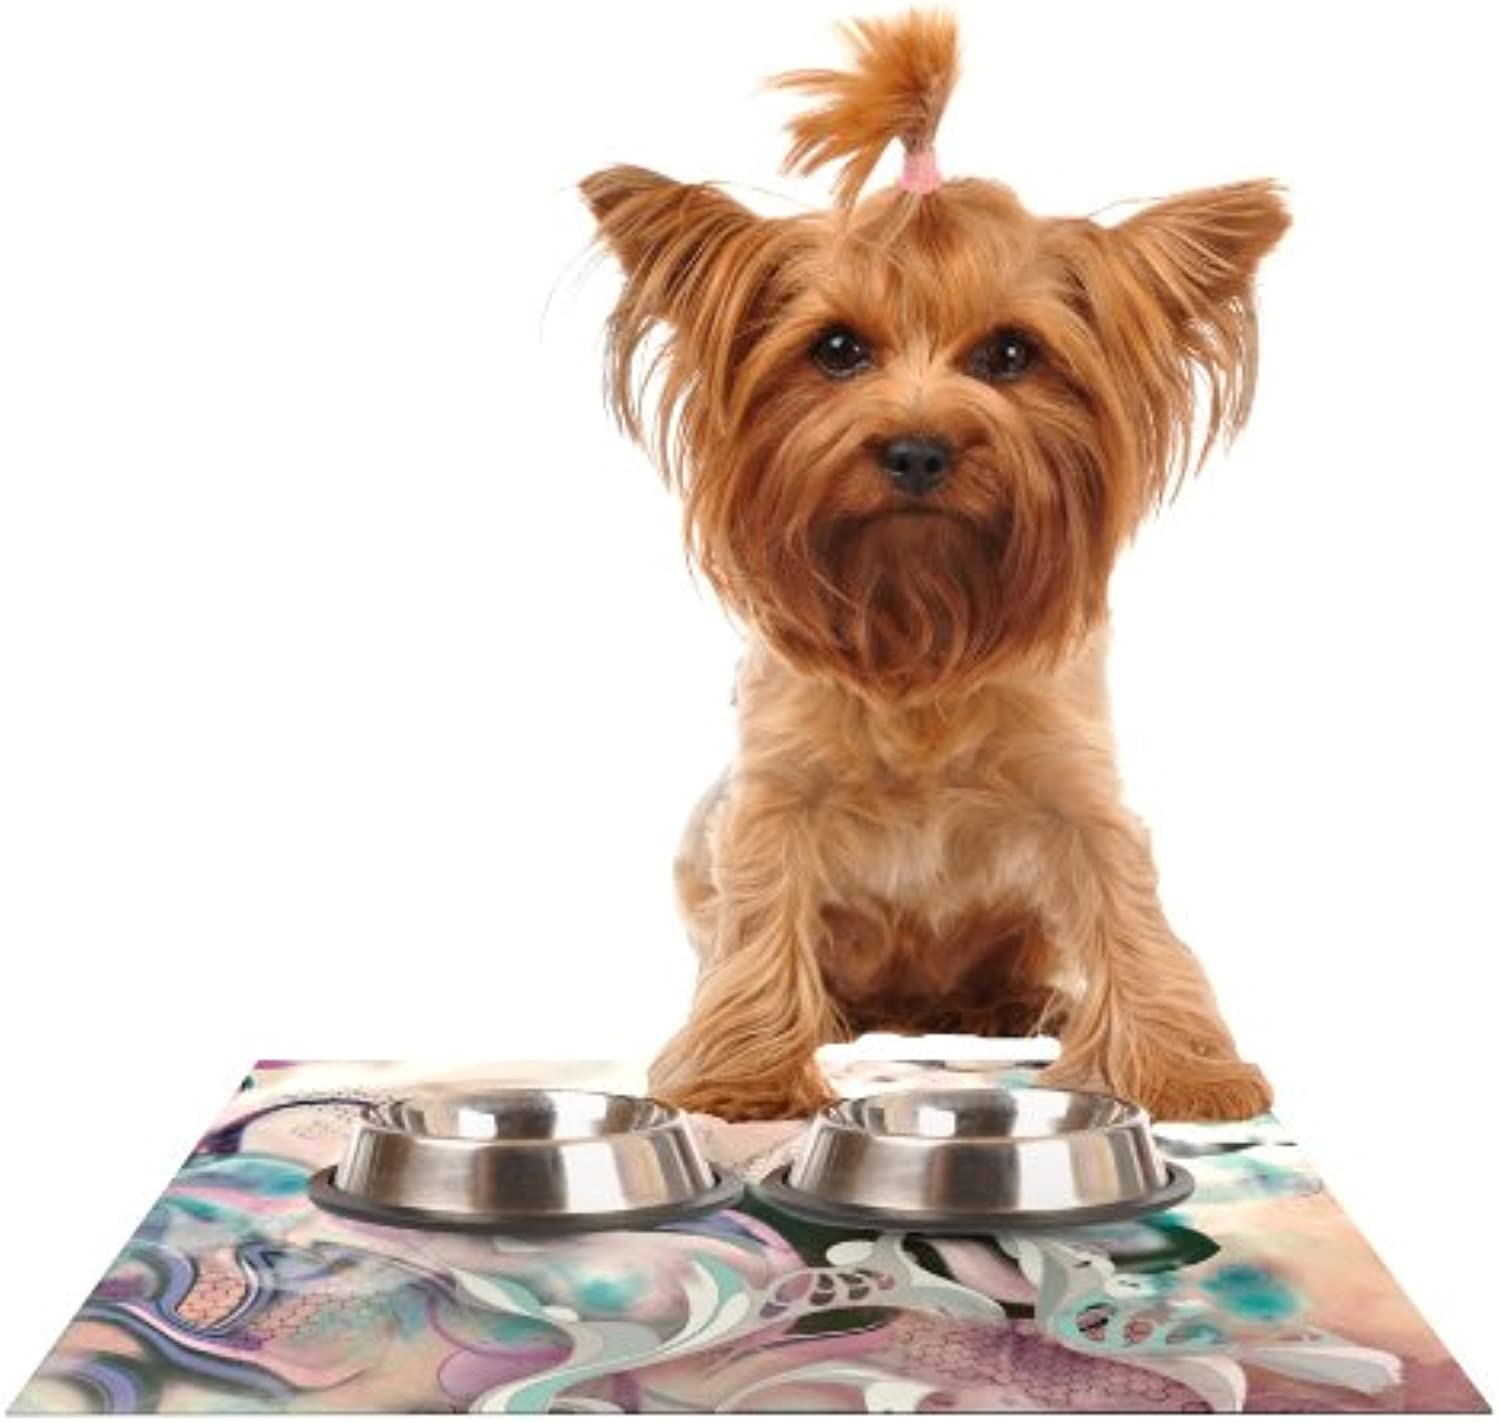 Kess InHouse Mat Miller Fluidity  Feeding Mat for Pet Bowl, 24 by 15Inch